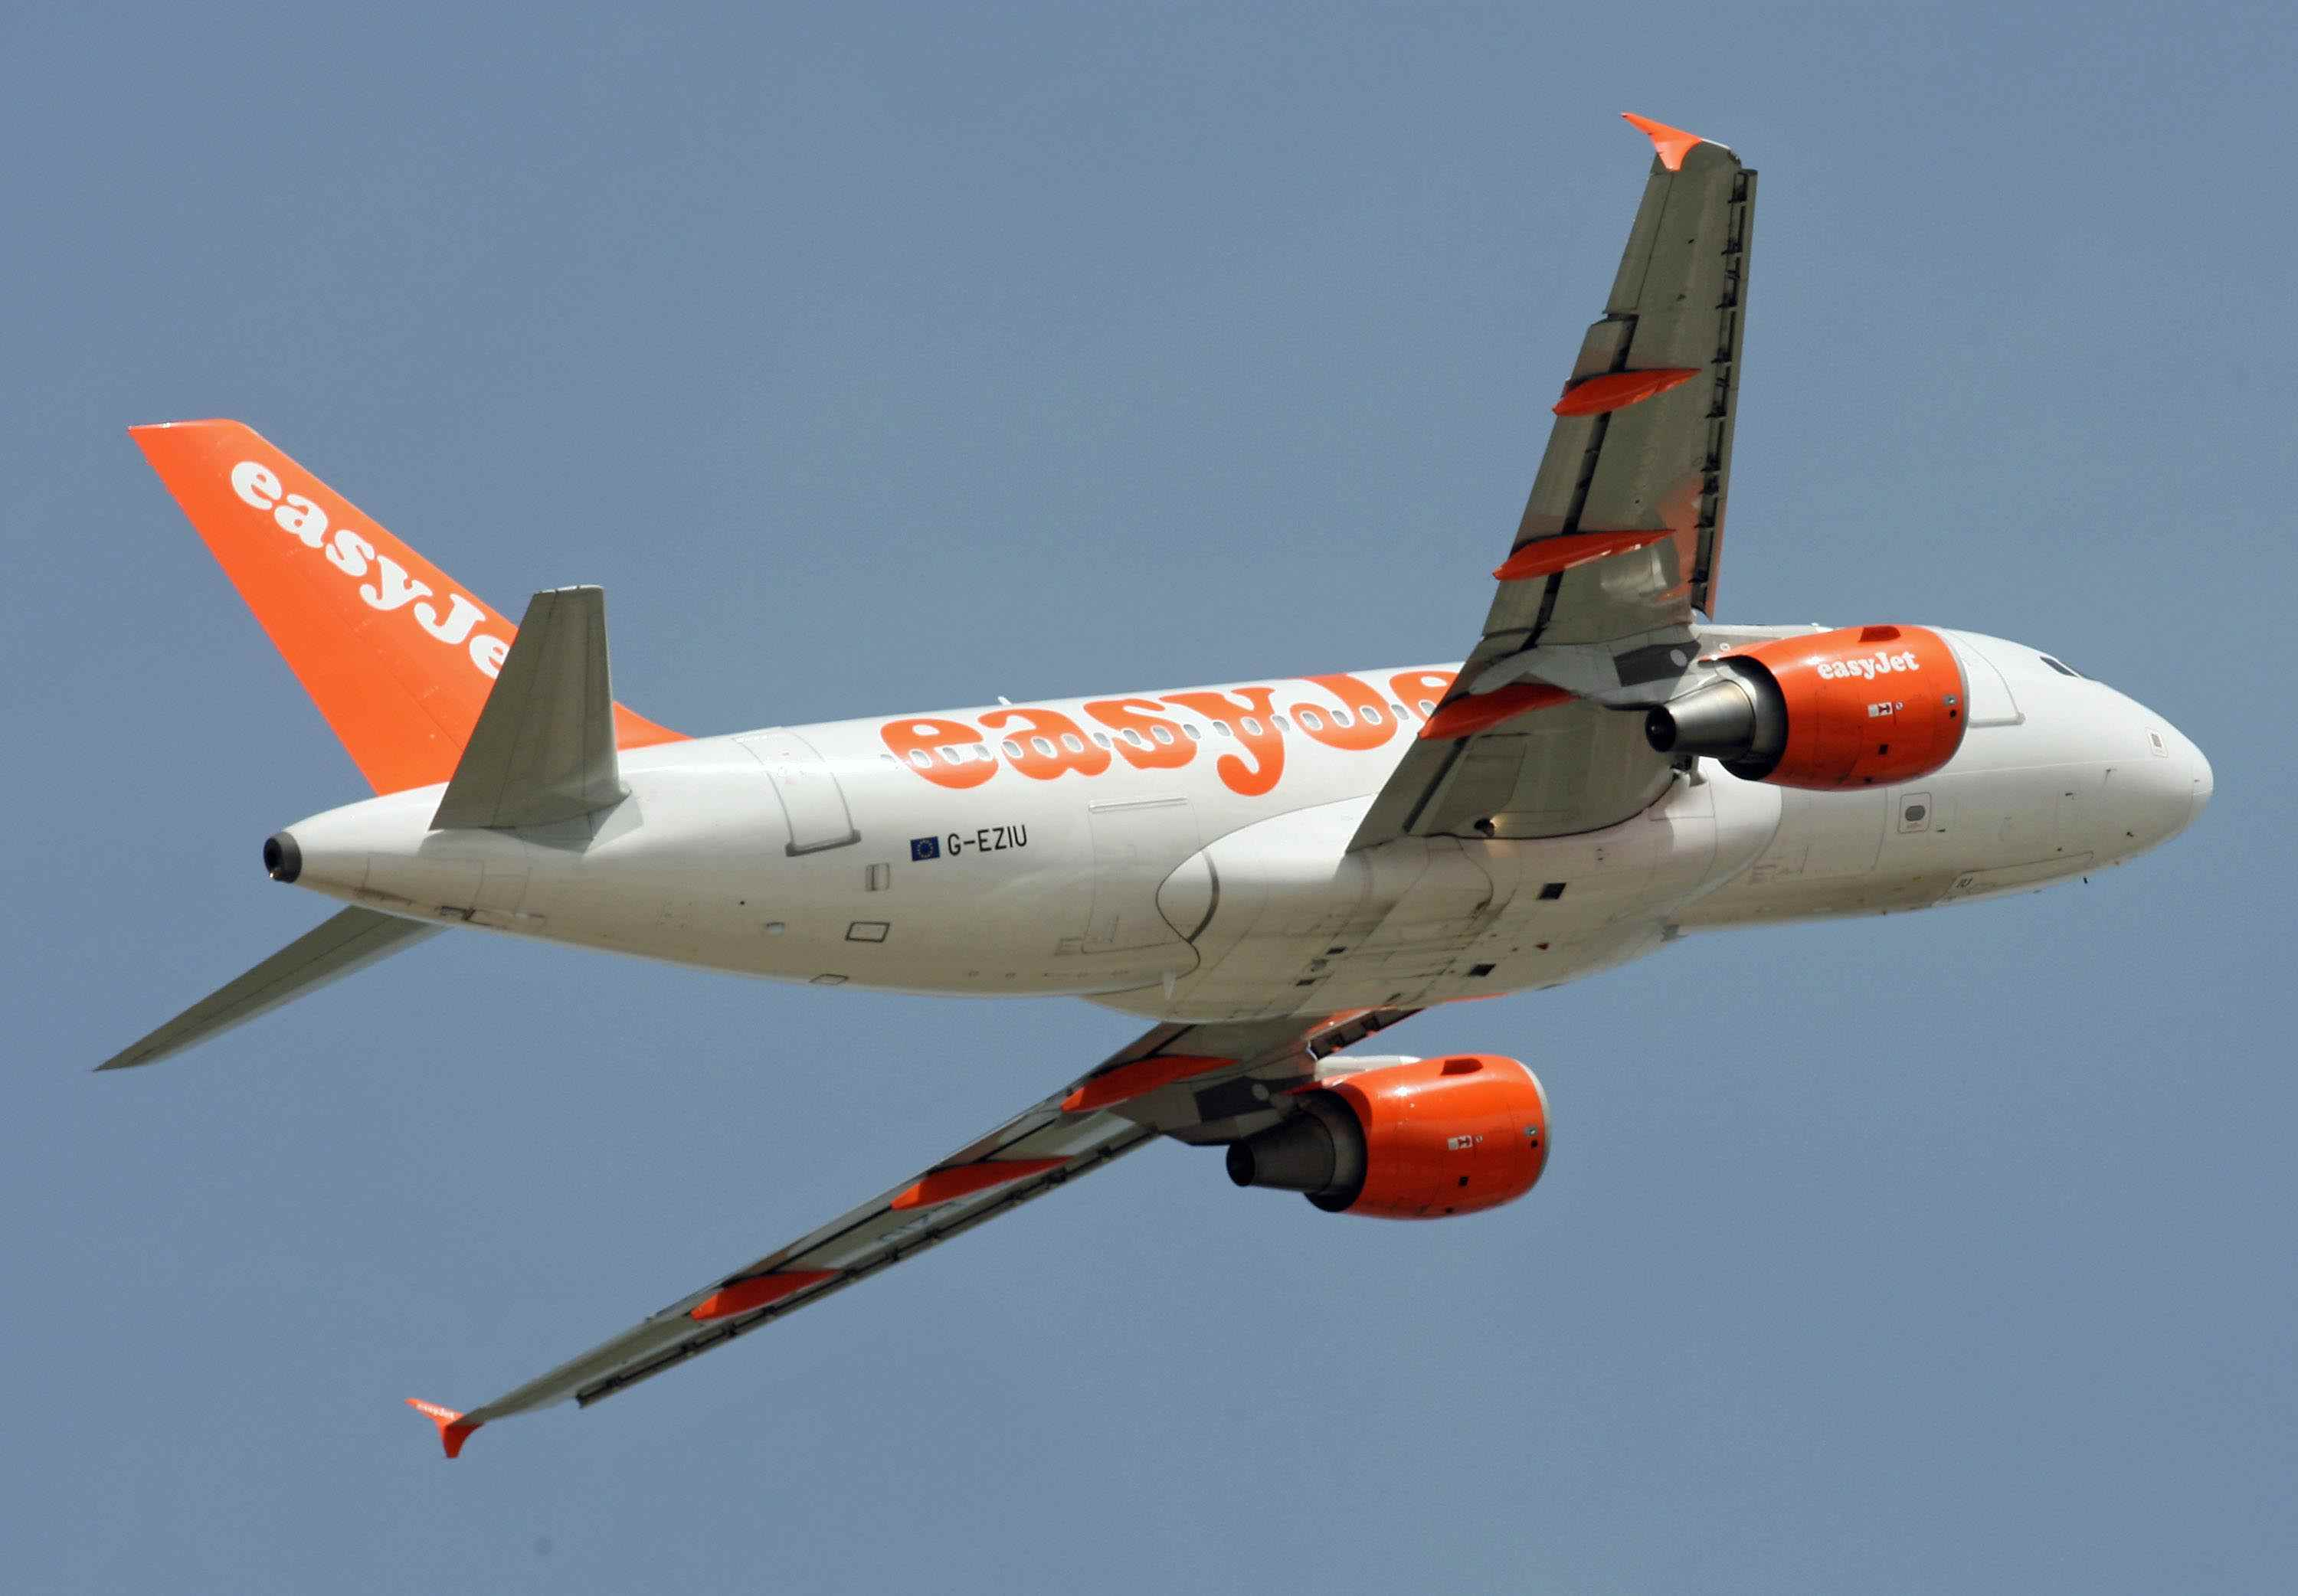 easyJet is a low cost carrier operating mainly in Europe.